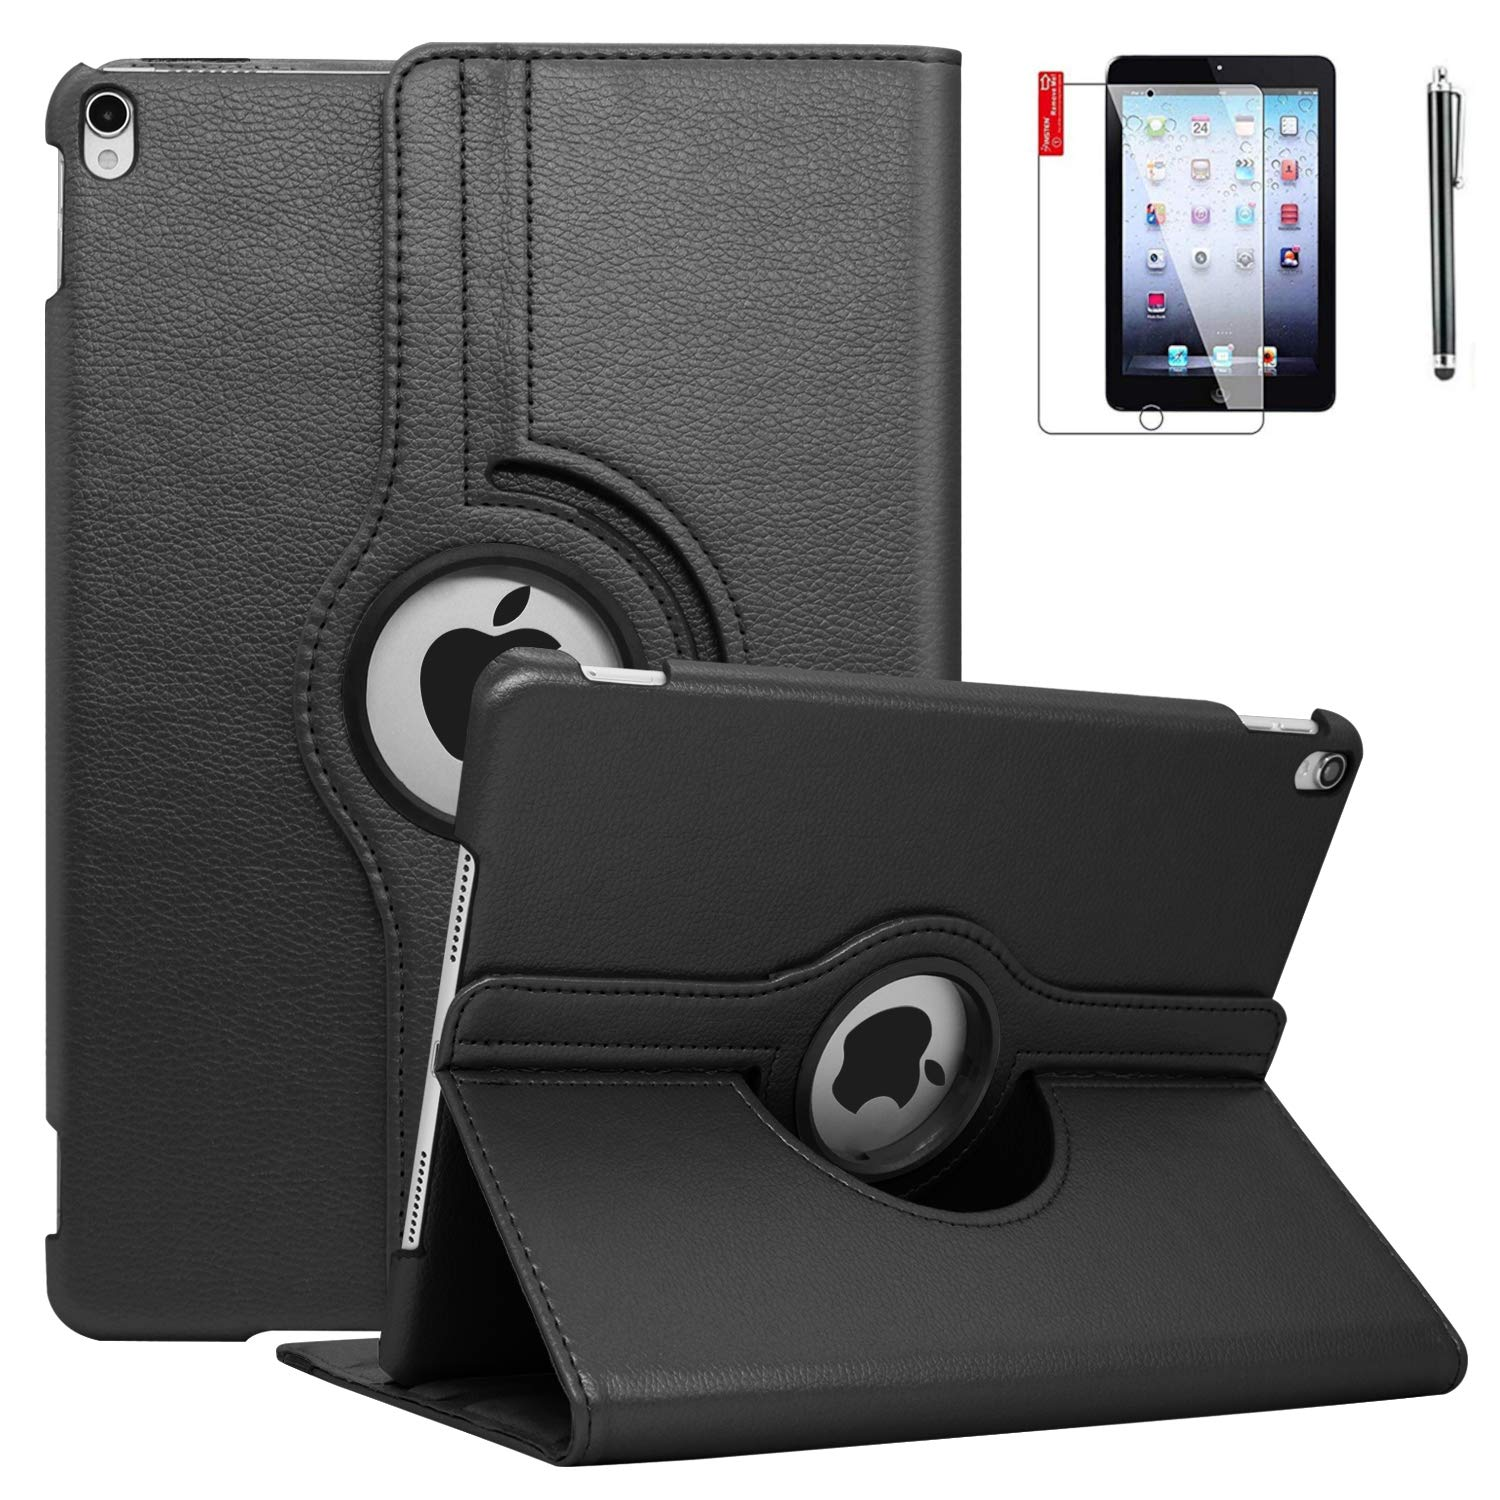 iPad Mini 3 Case with Bonus Screen Protector and Stylus - iPad Mini 3/2/1 Case Cover - 360 Degree Rotating Stand with Auto Sleep/Wake for Mini 1st/ 2nd/ 3rd Generation - A1599 A1600(Black)